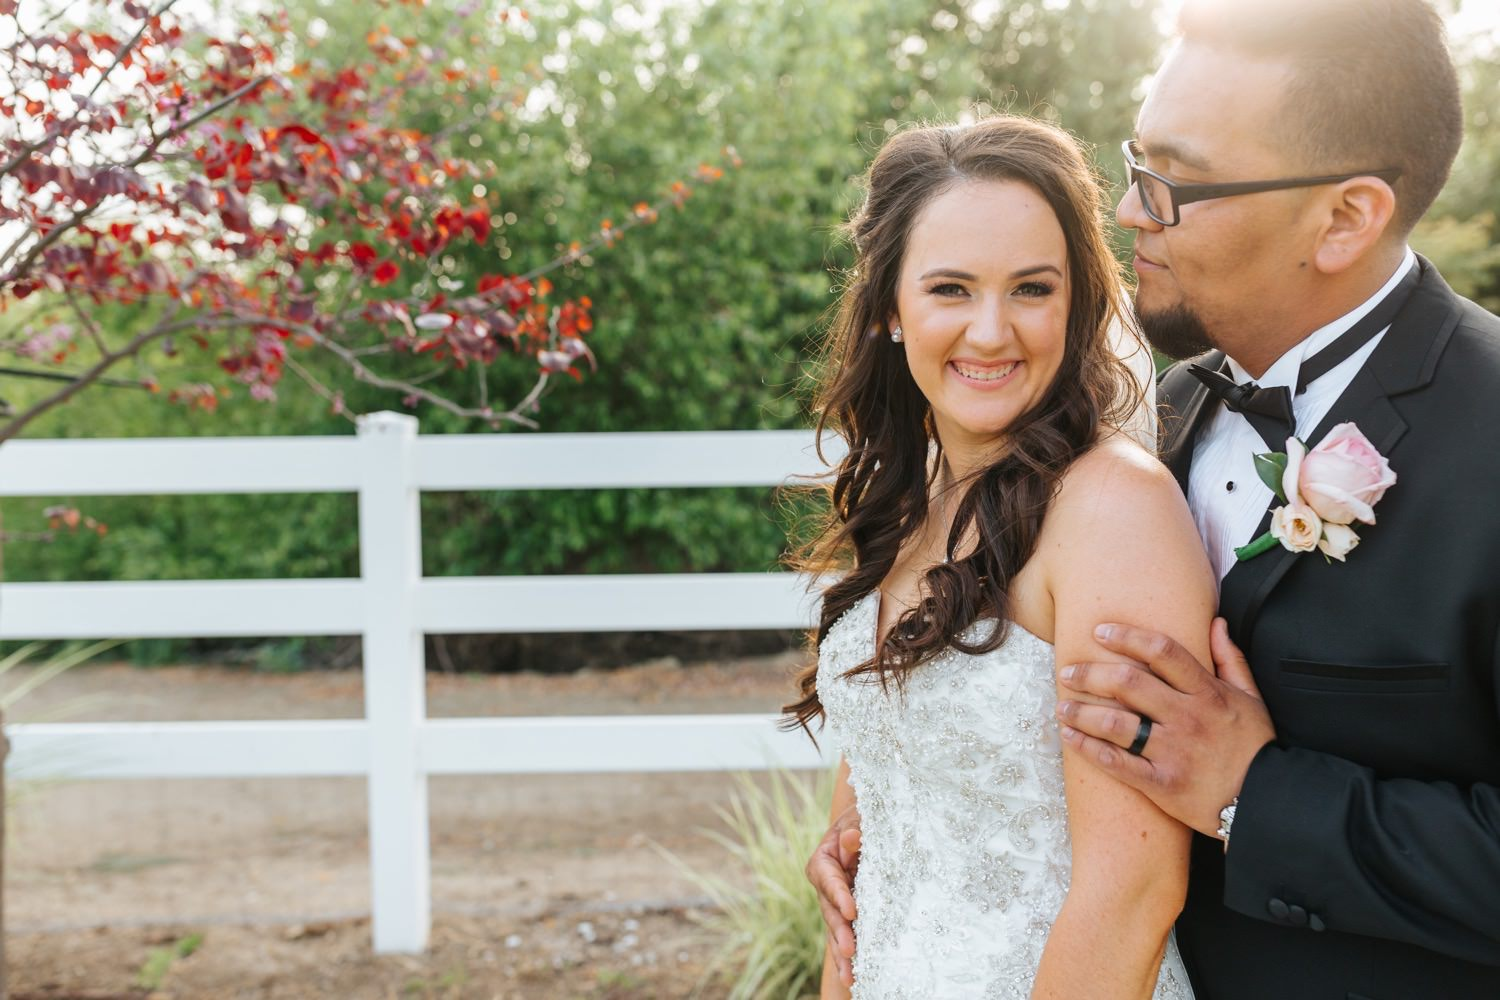 Southern California Natural Light Wedding Photography - Brittney Hannon Photography - https://brittneyhannonphotography.com